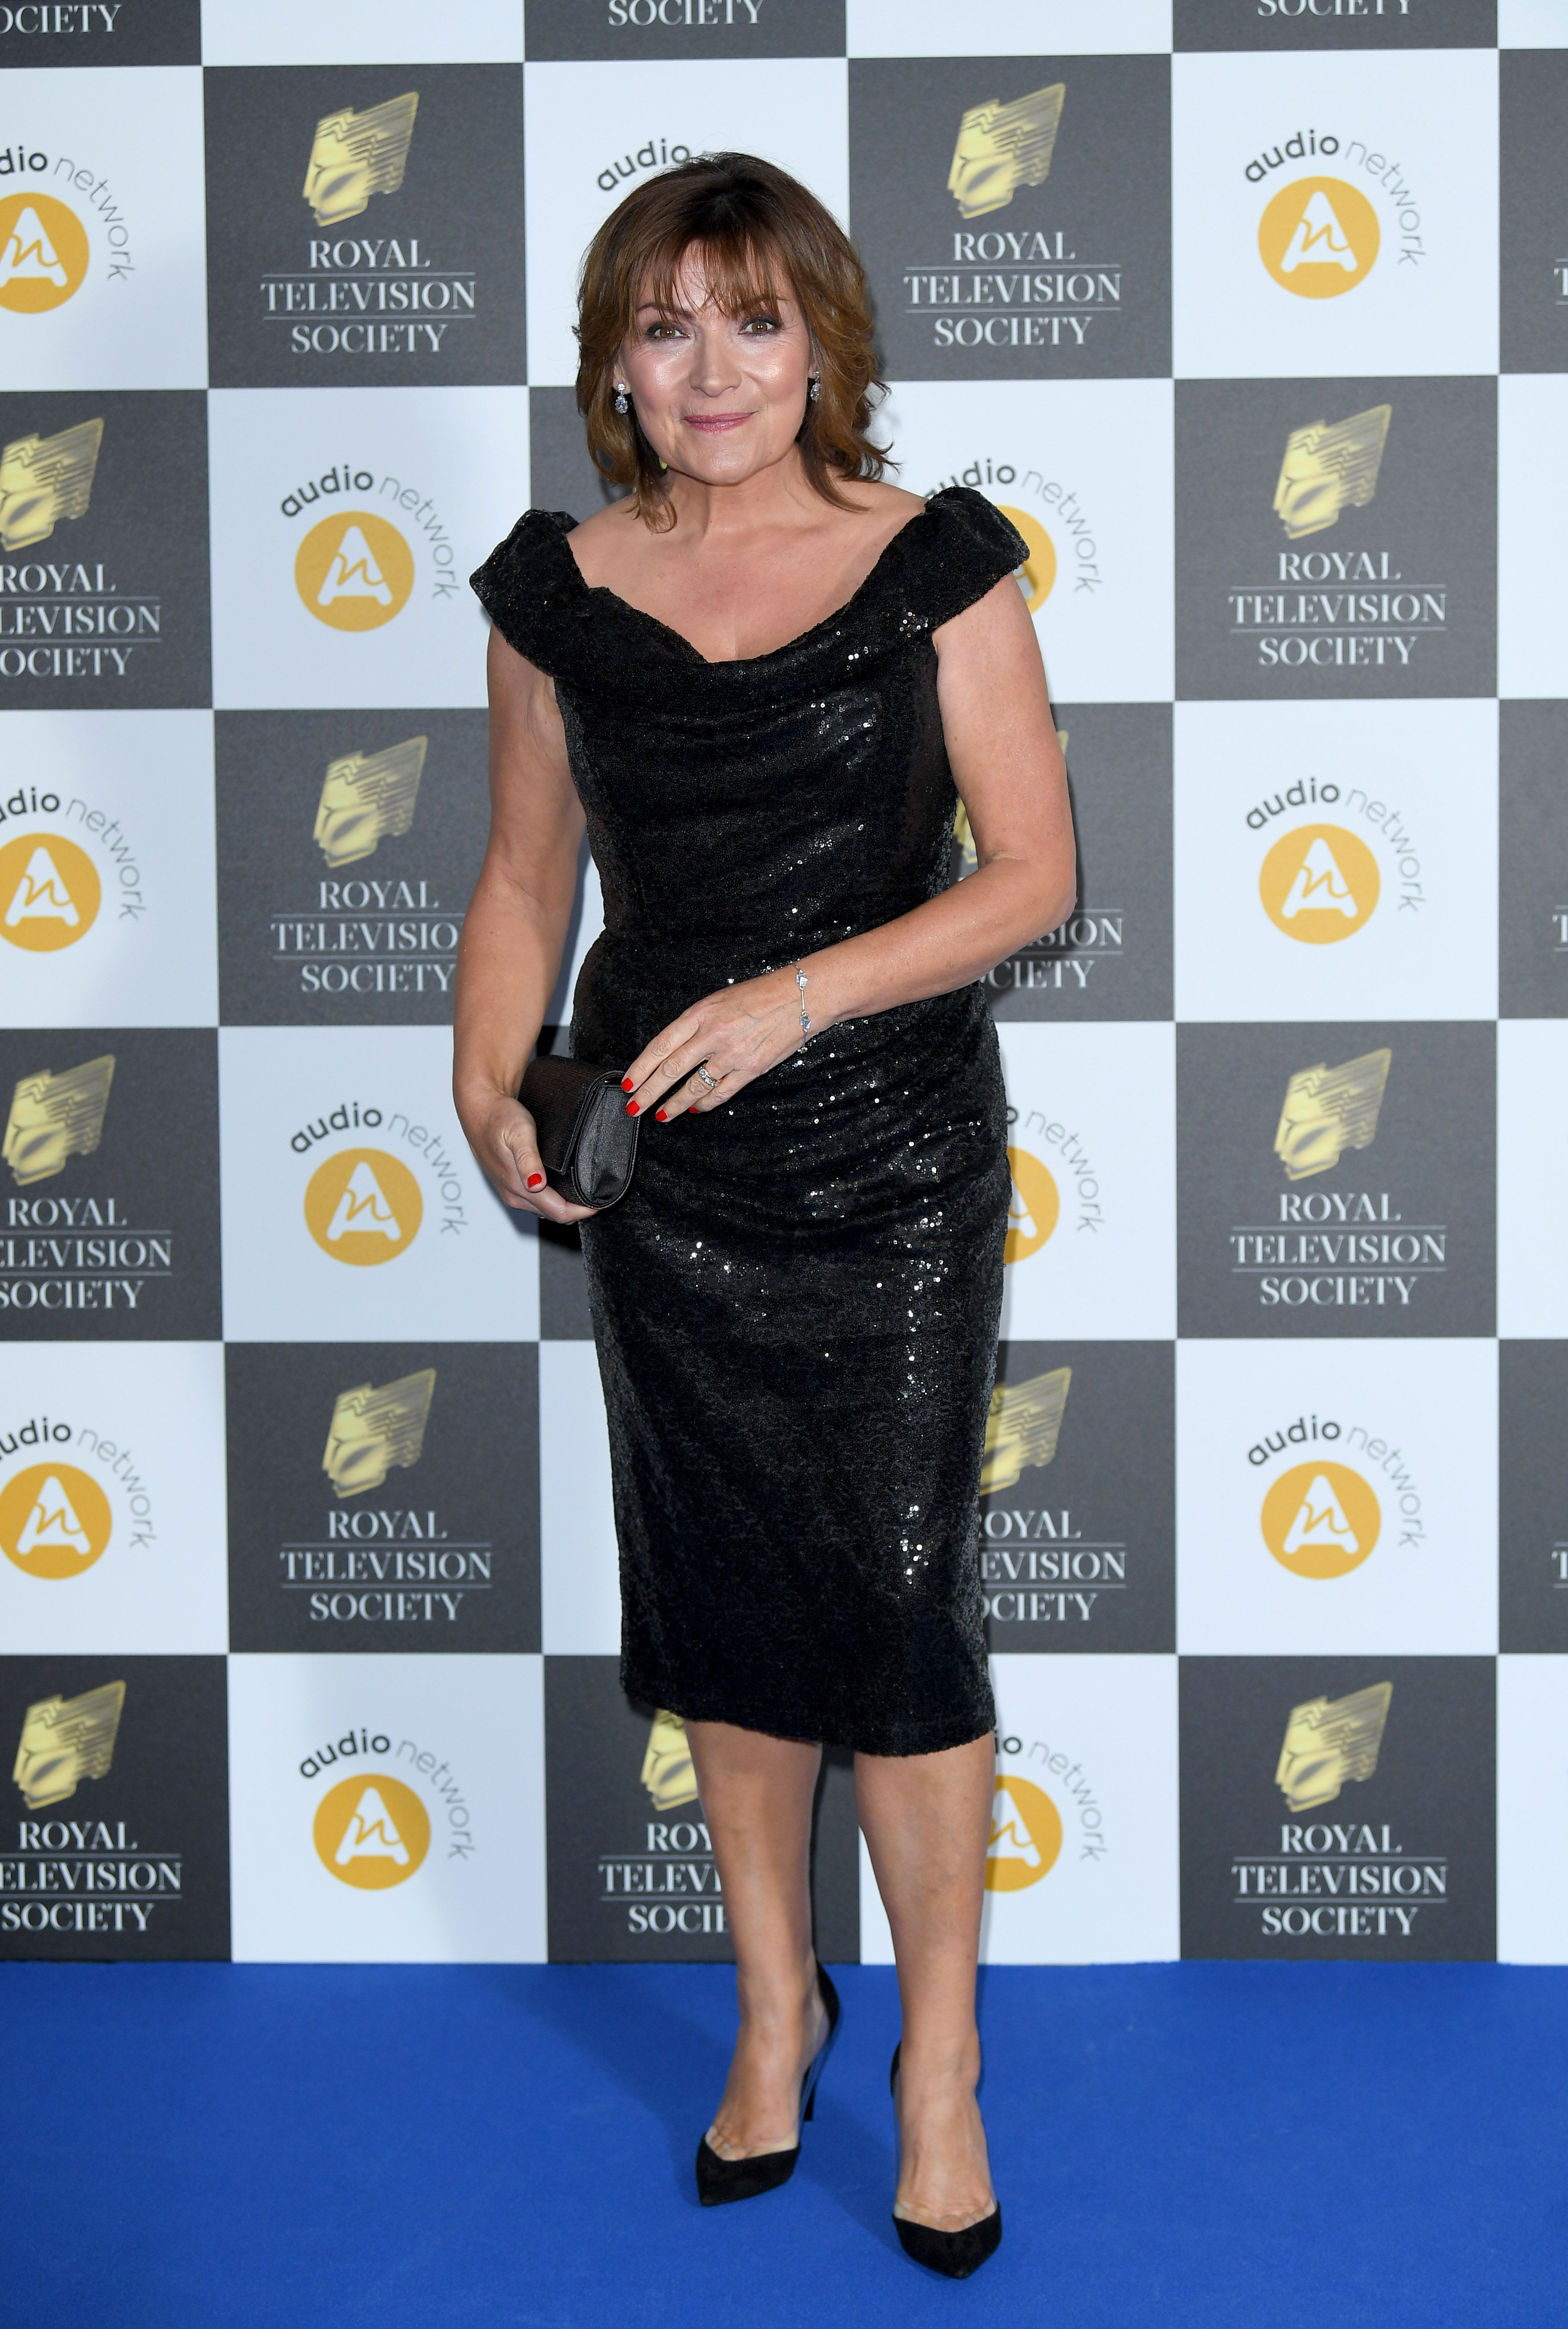 Lorraine Kelly atthe Royal Television Society Programme Awards at Grosvenor House on March 19, 2019, in London, England | Photo:Karwai Tang/WireImage/Getty Images